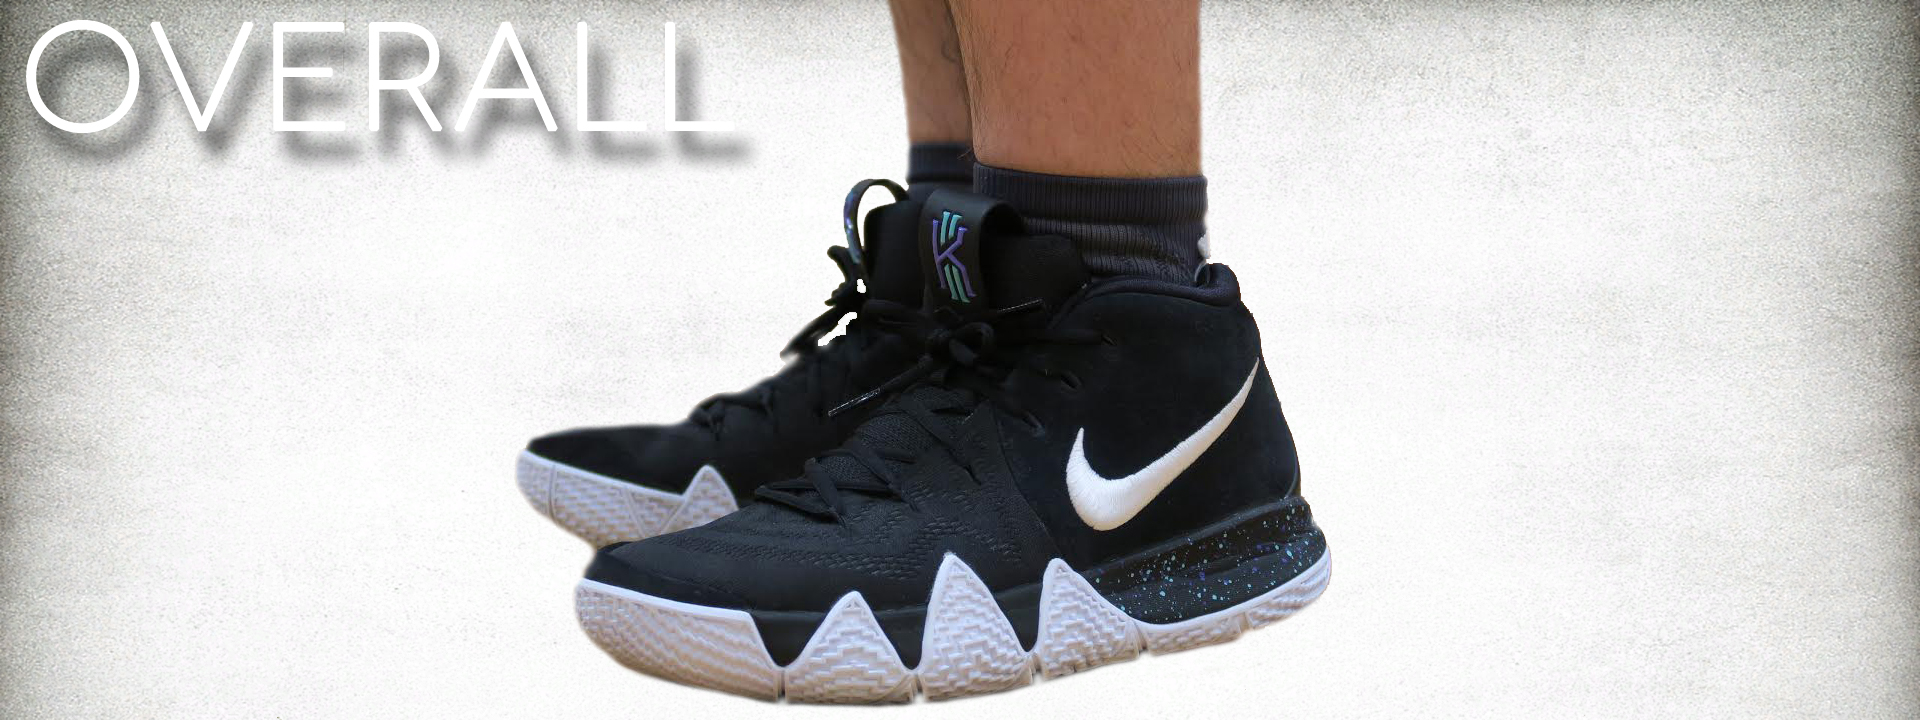 online store 41d70 27ff7 Nike Kyrie 4 Performance Review - WearTesters